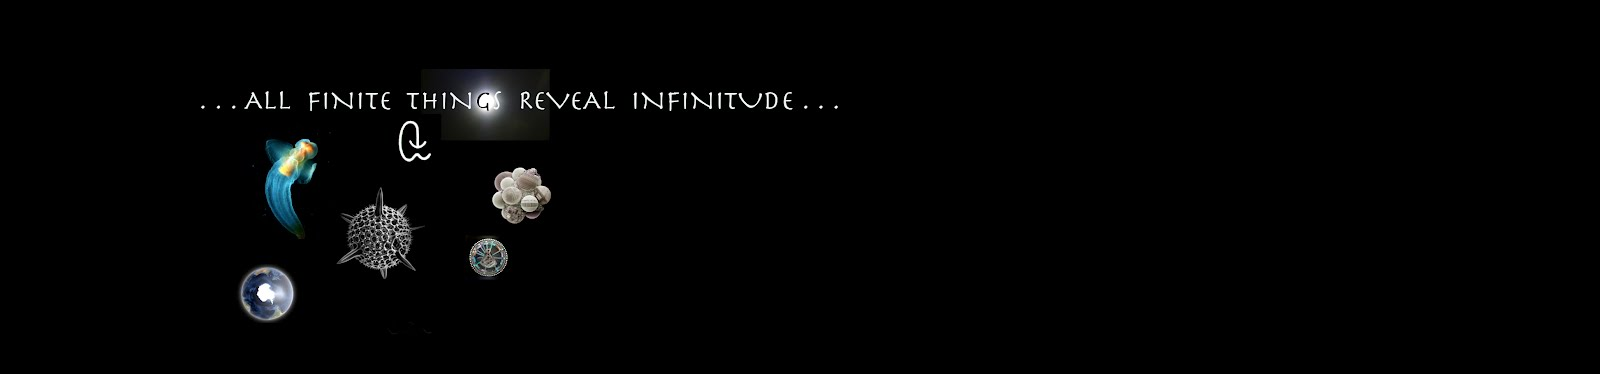 . . . All Finite Things Reveal Infinitude . . .